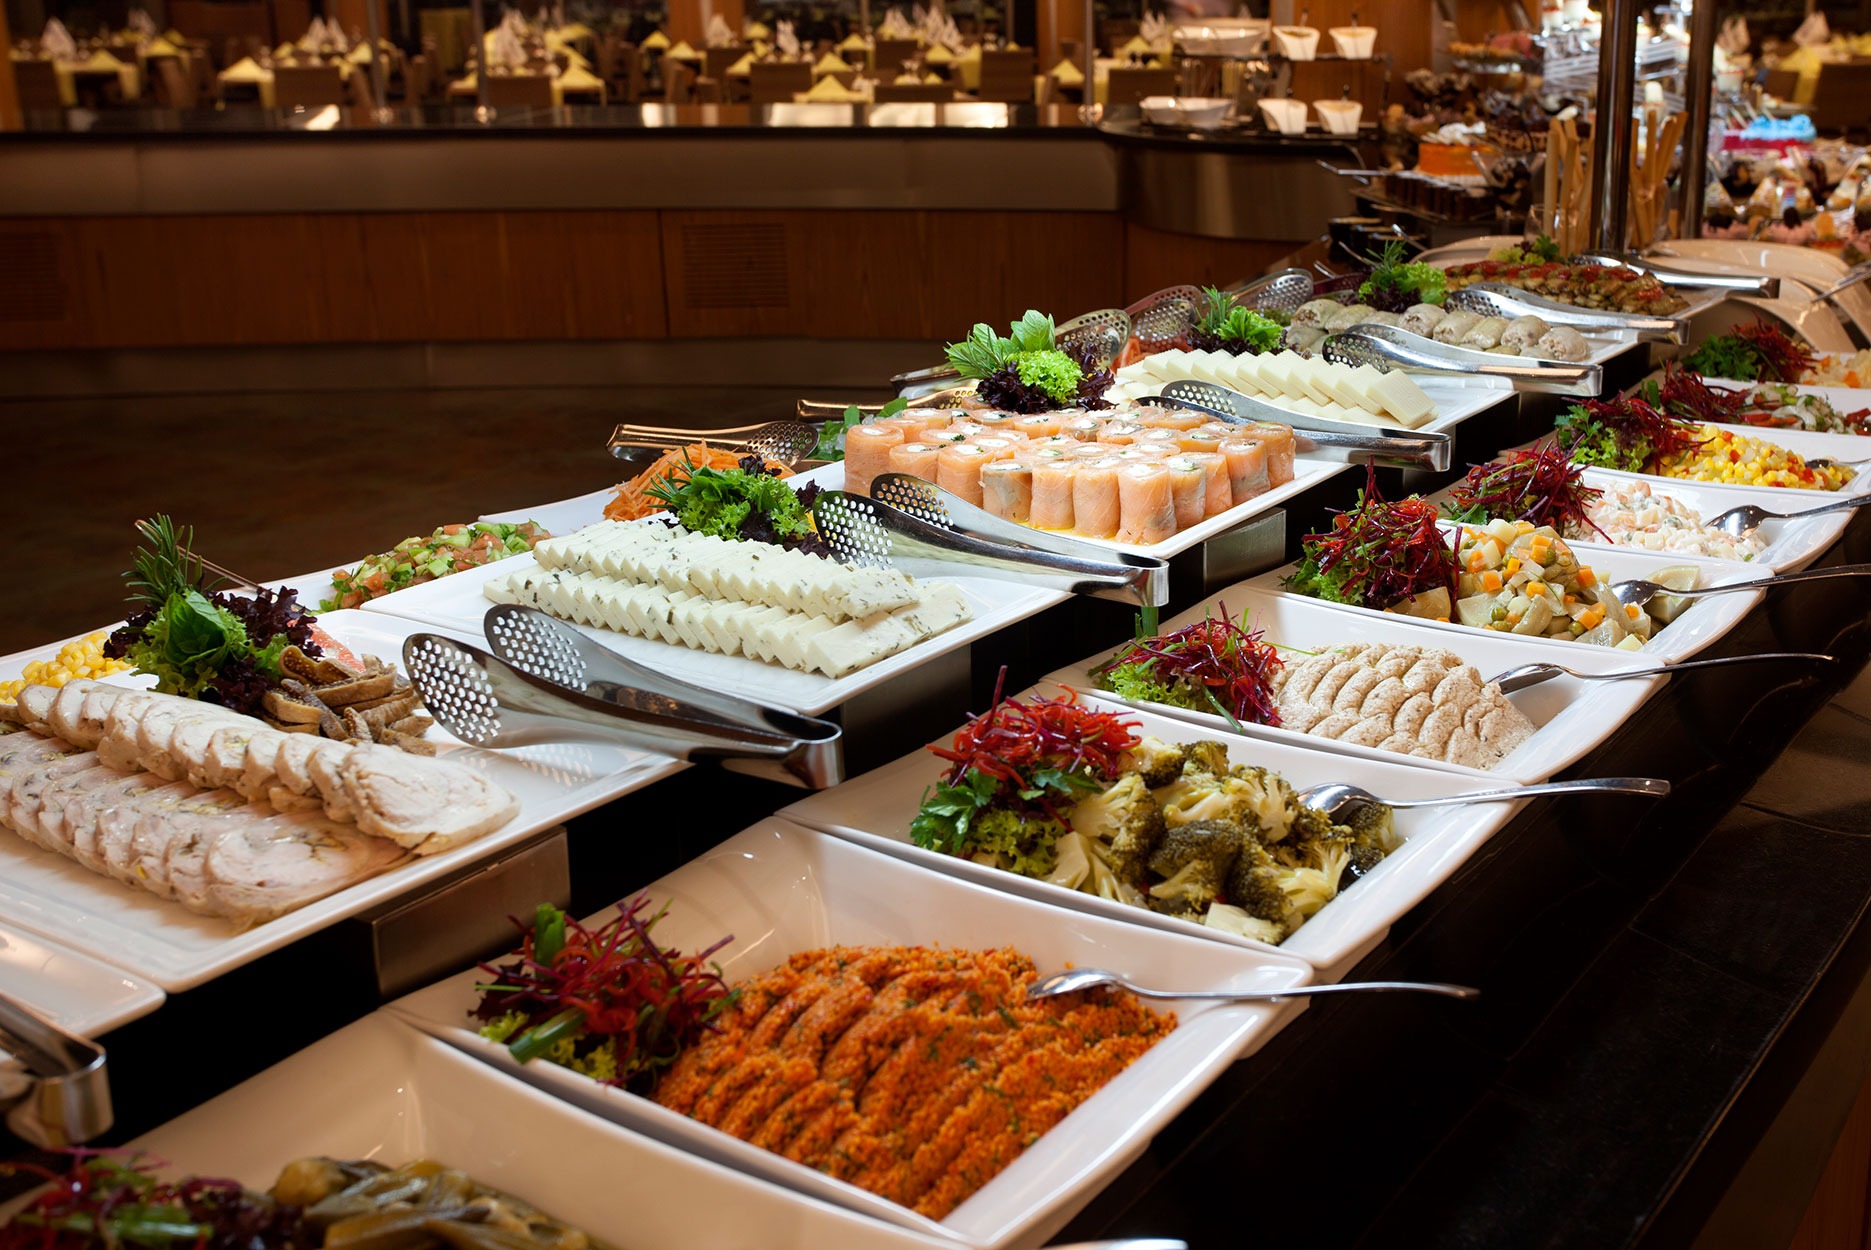 Luxury Buffet in a hotel restaurant. Focus on sushi.